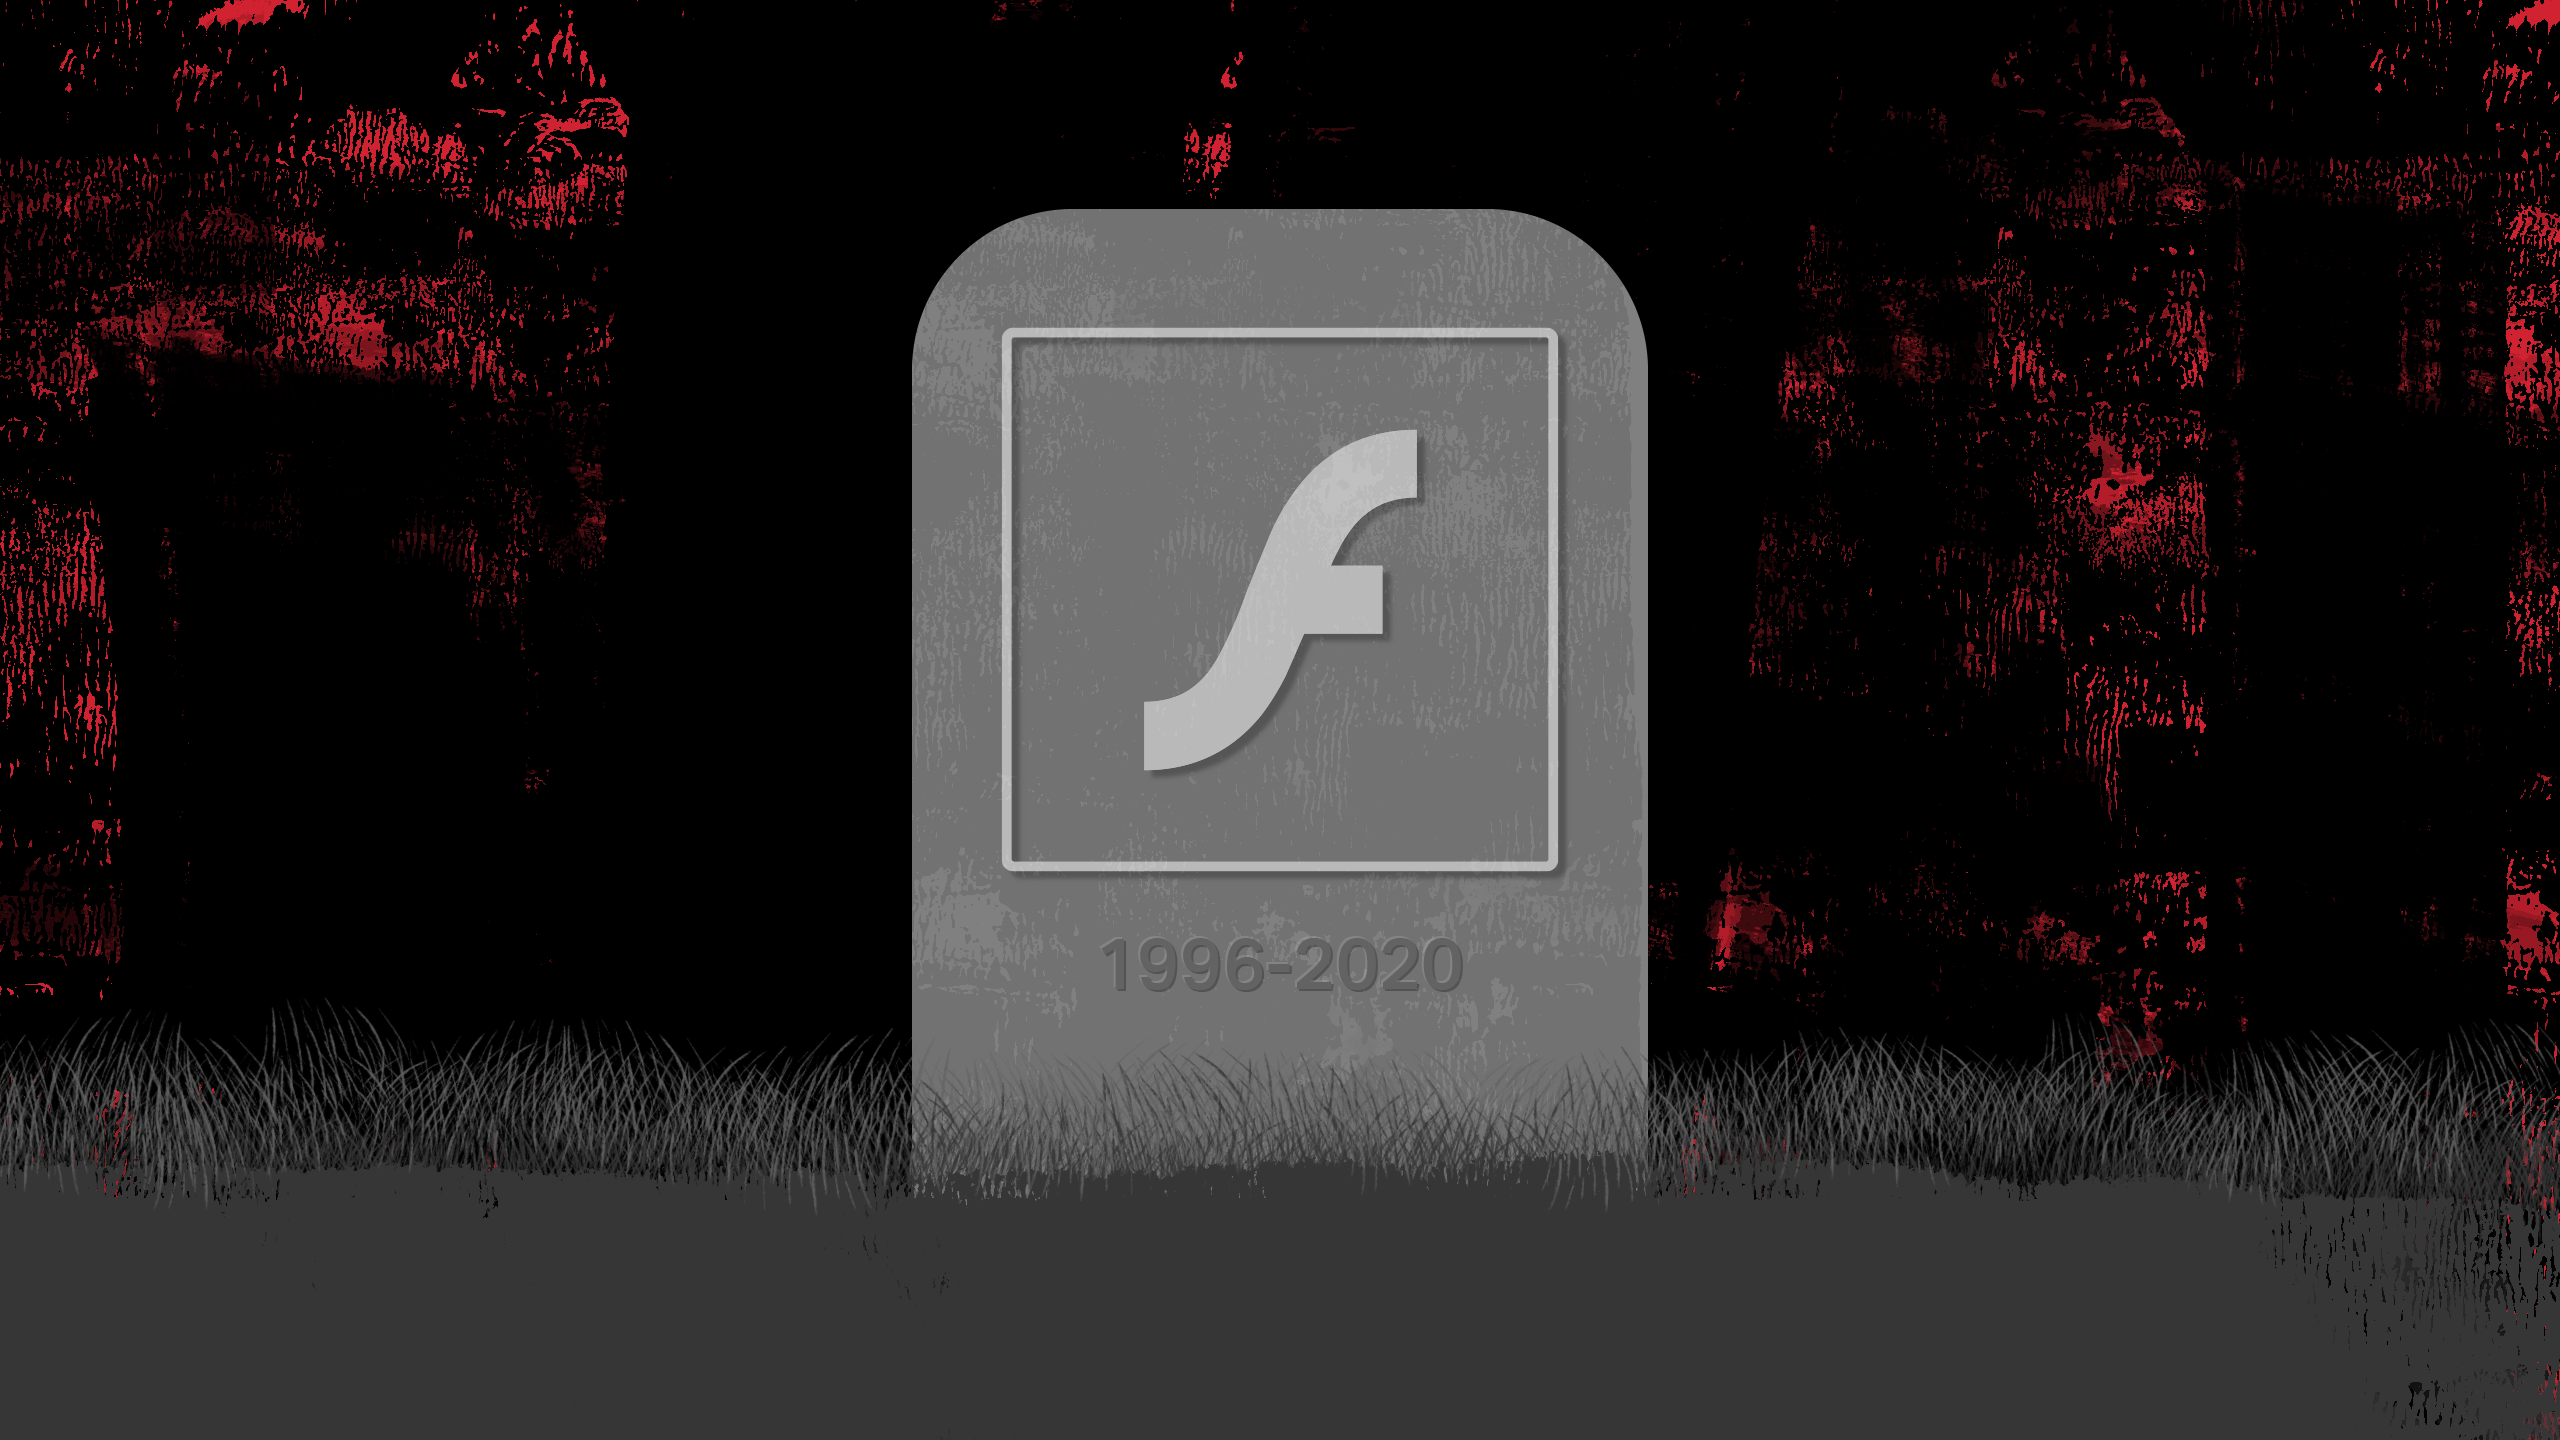 adobe flash dead 2020